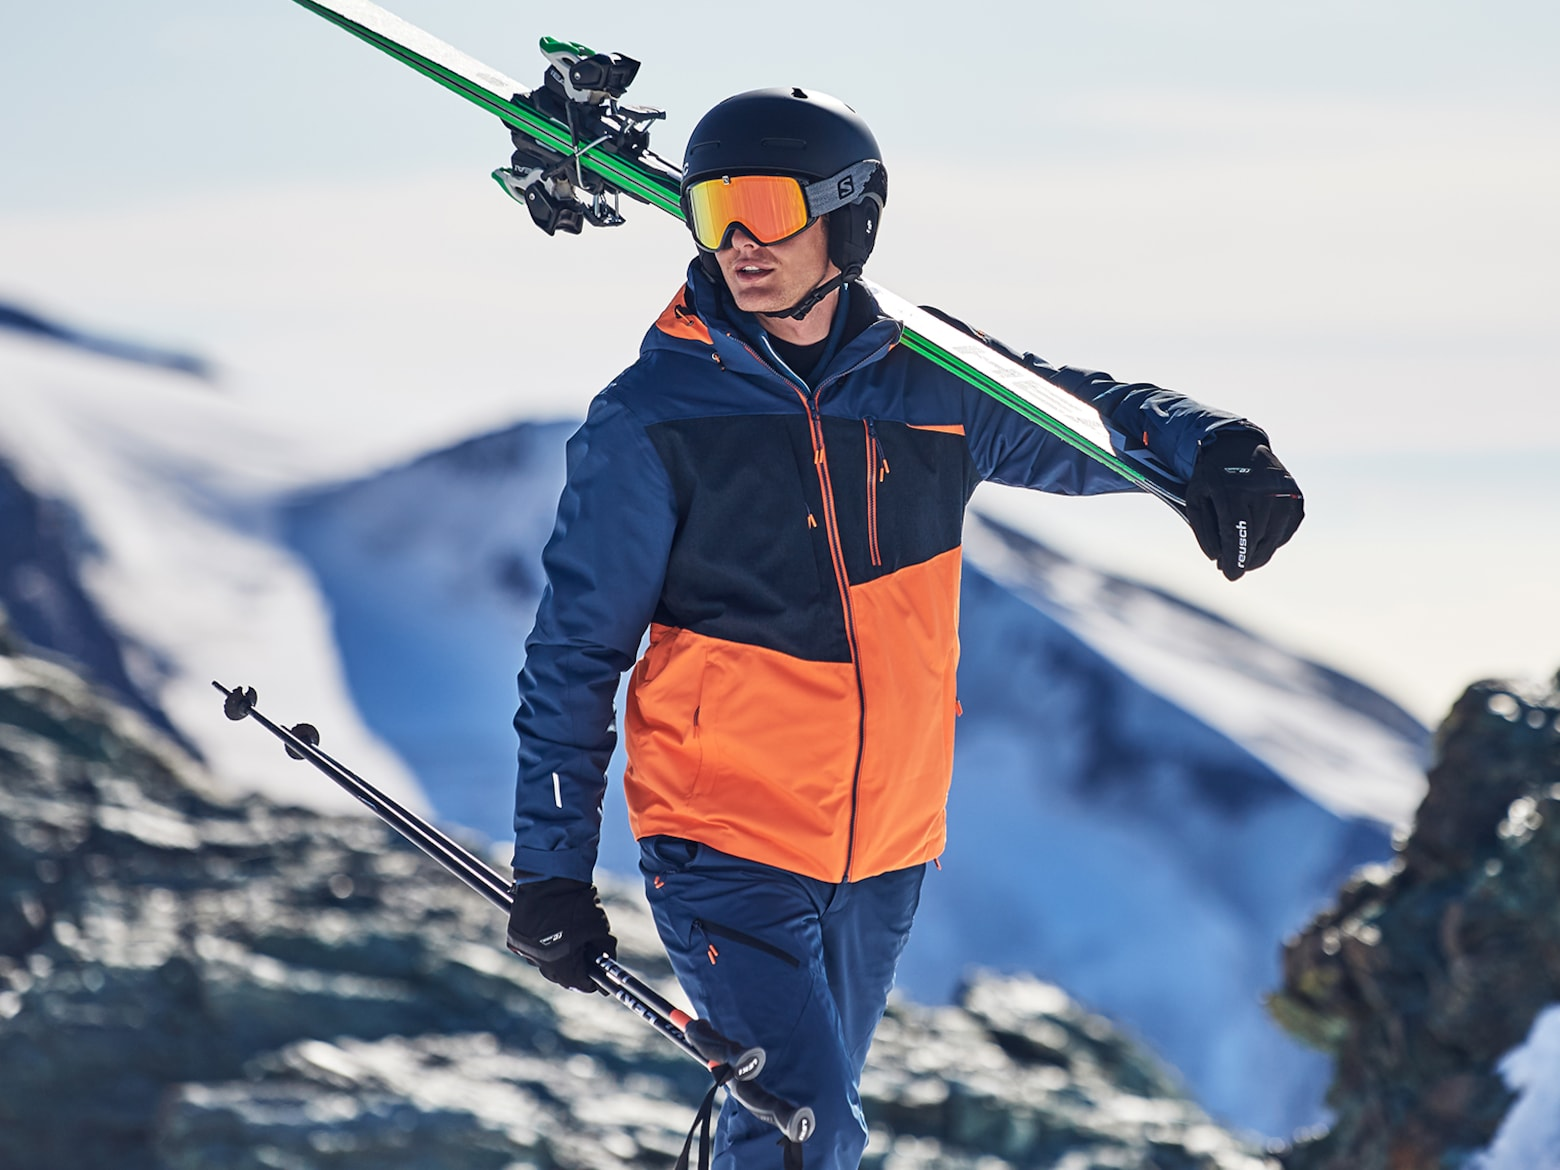 Luca - Blue and Orange Ski Look